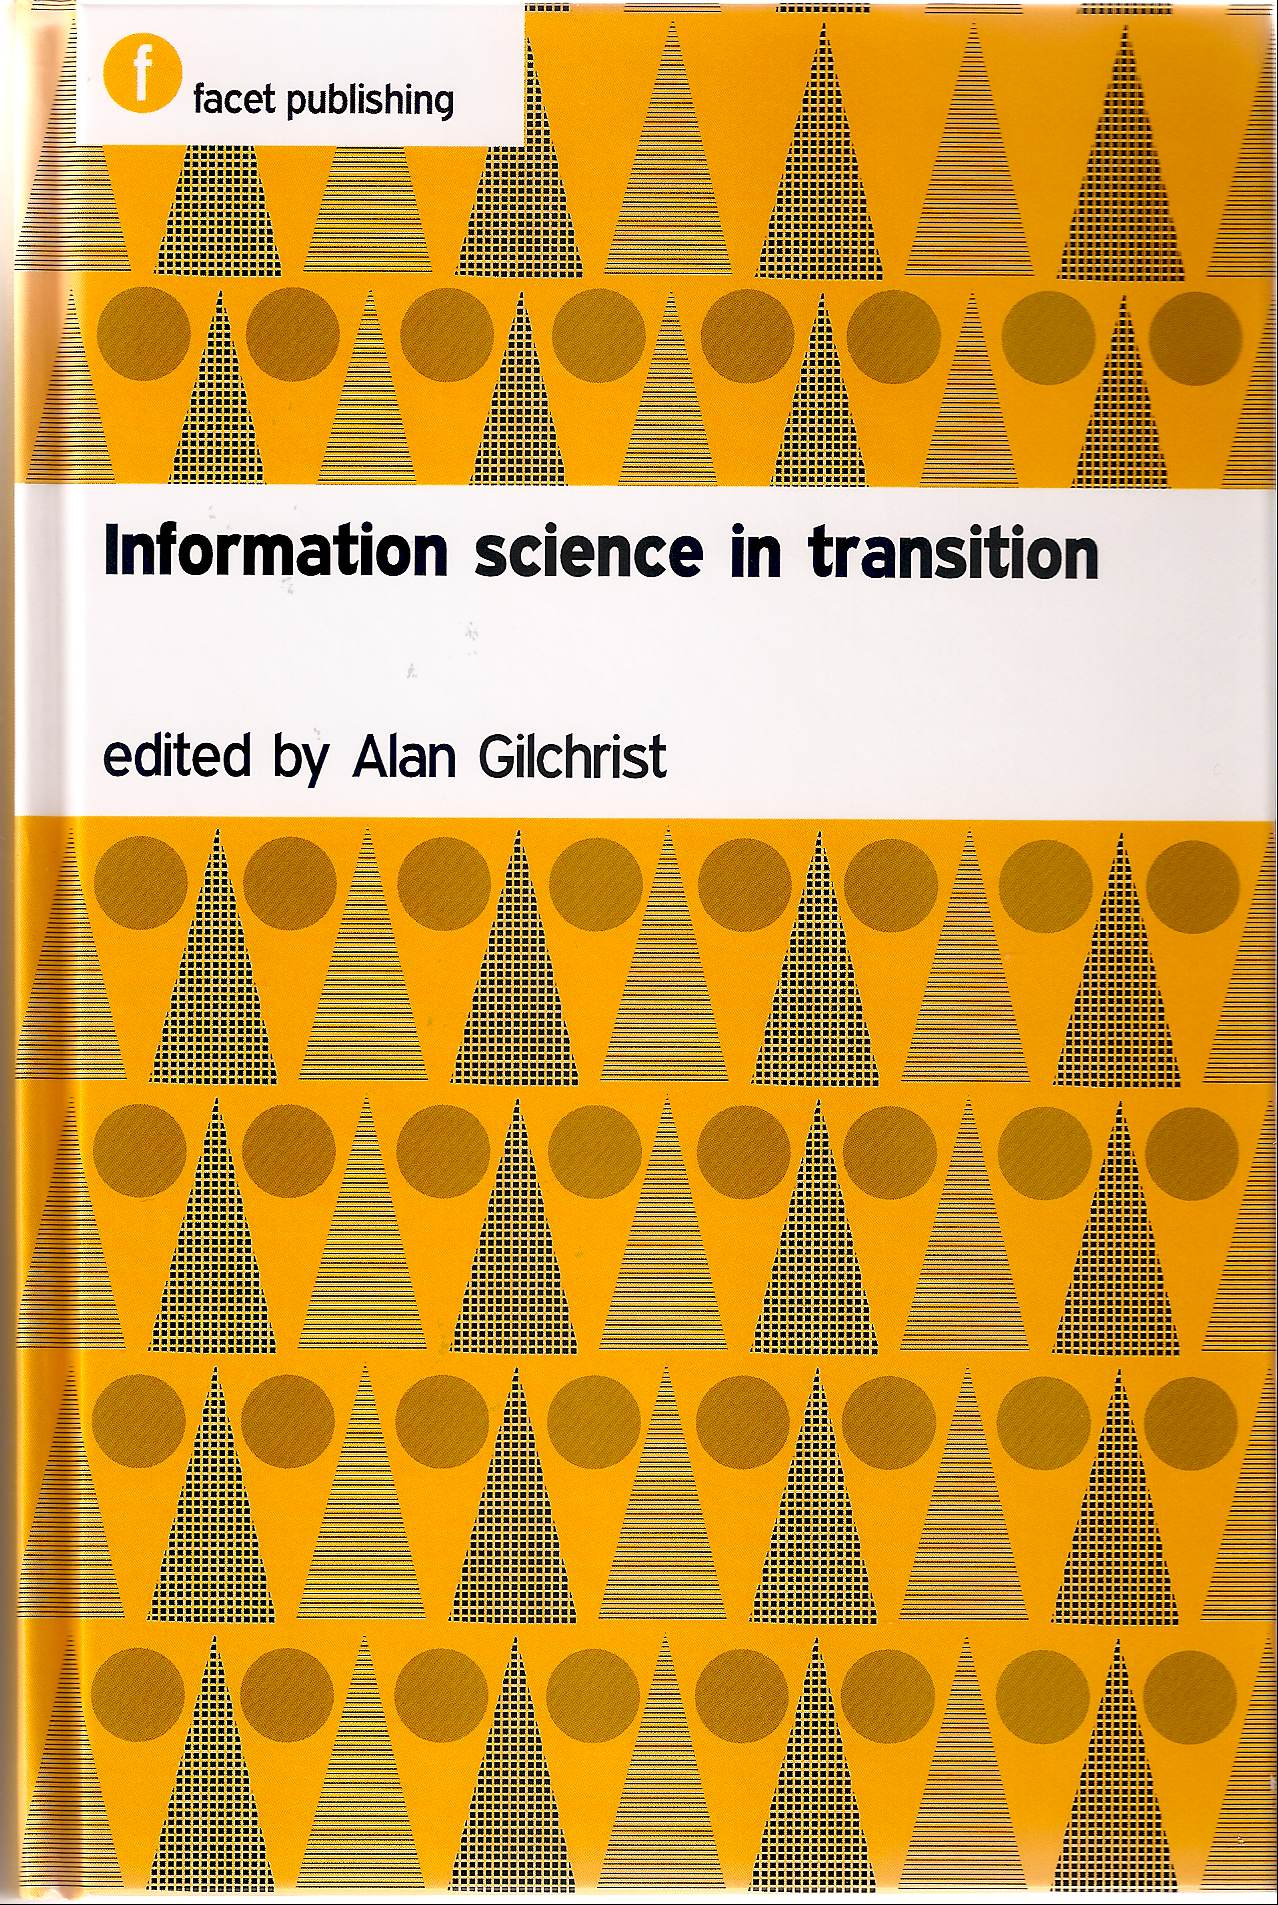 info-science book